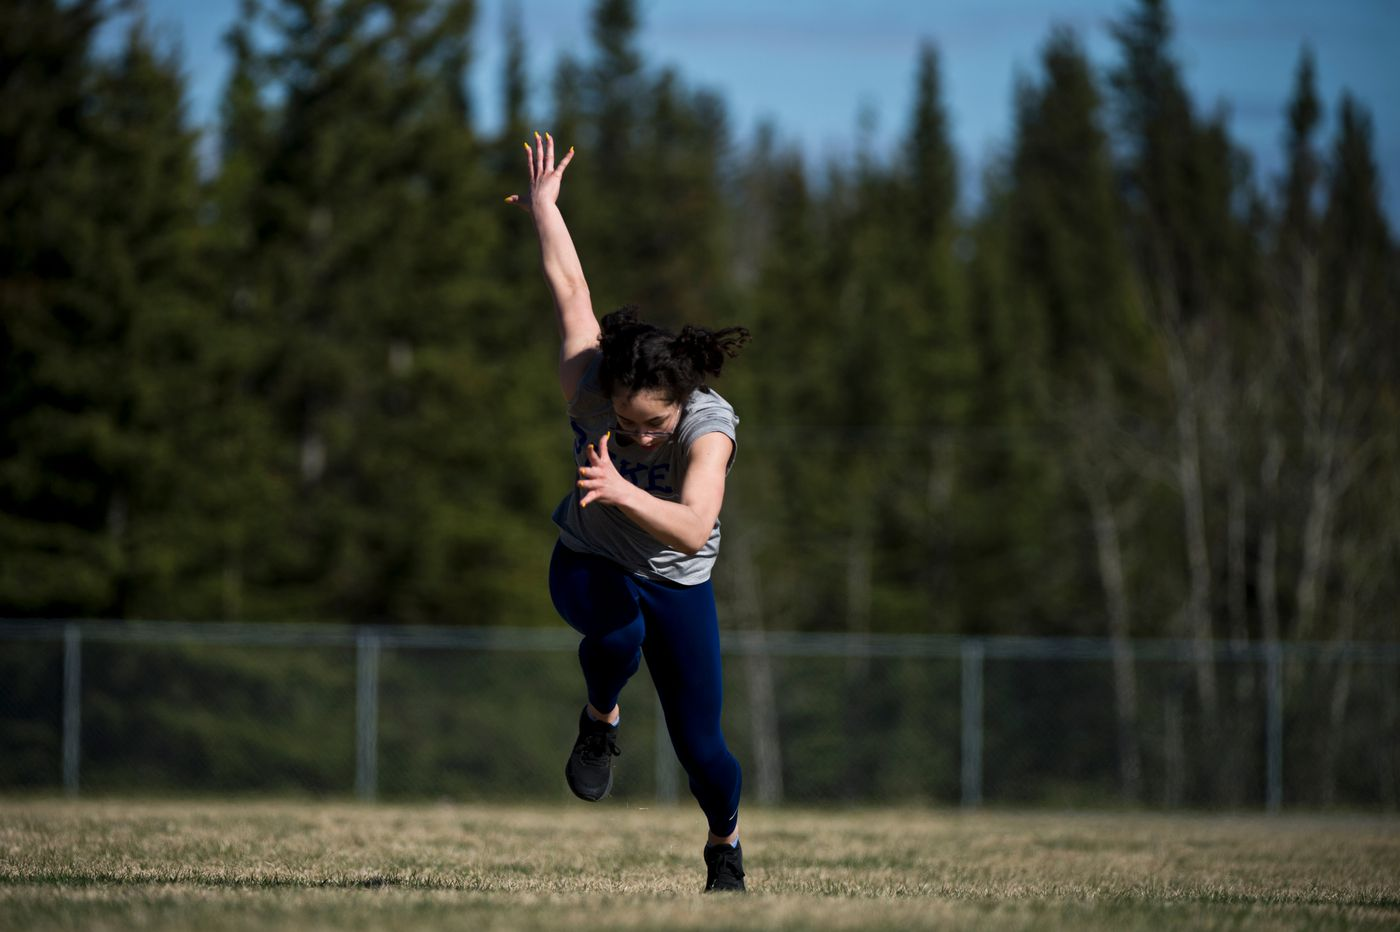 Hailey Williams launches into a run across the infield of the Delta High School track on May 15, 2020. (Marc Lester / ADN)